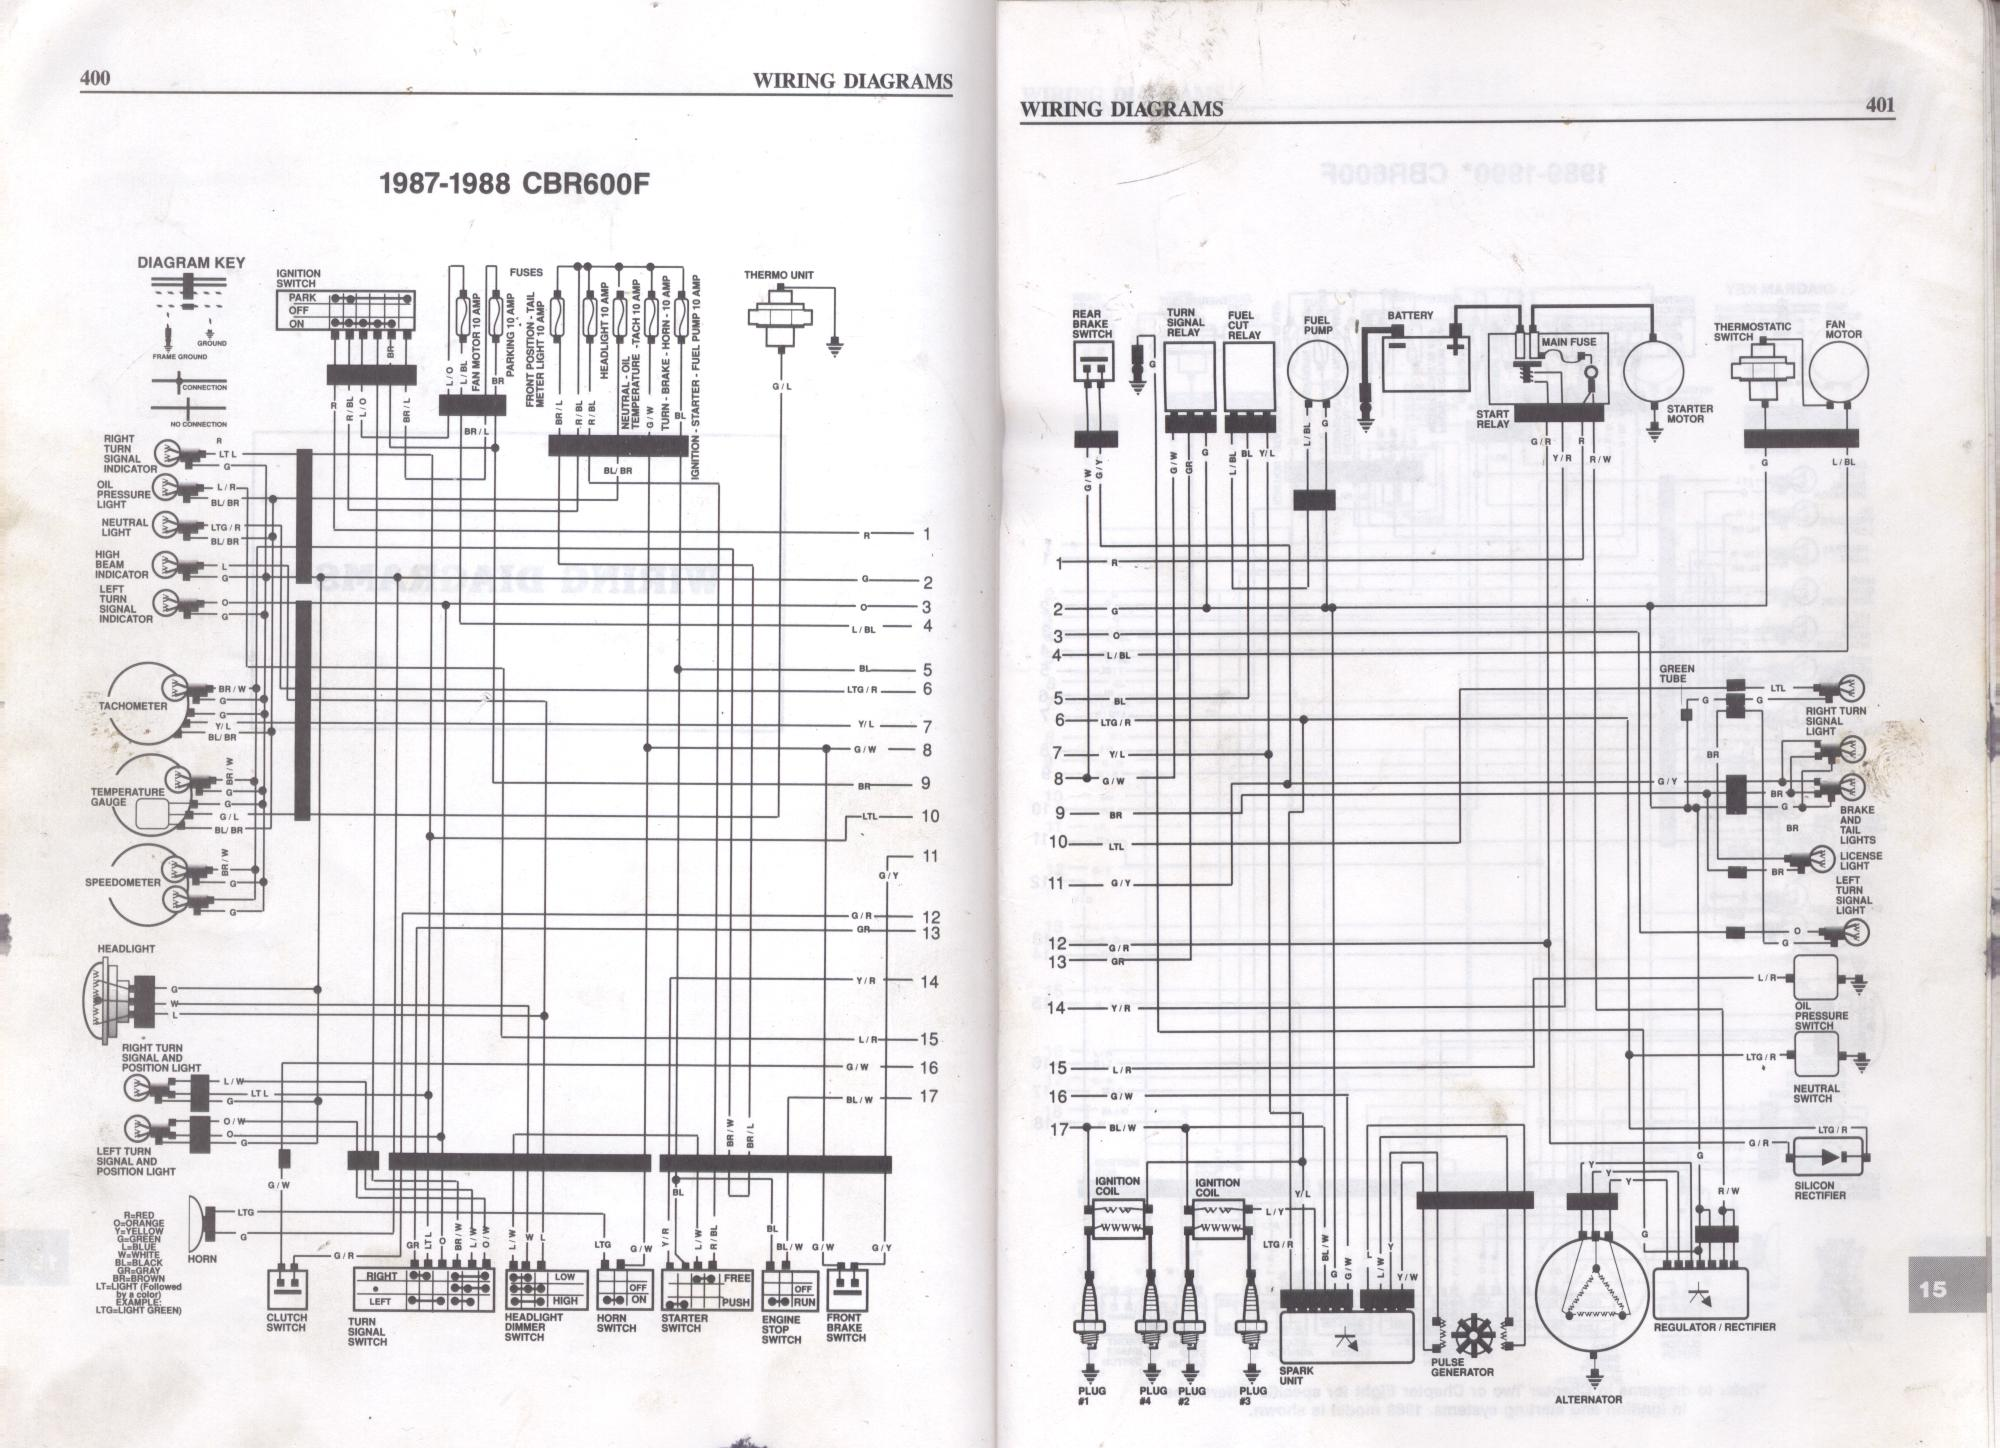 Sc 7009 A Wiring Diagram 24 Images Modbus Plus Index Of 0 0e 1987 1988 Honda Cbr600f Diagrams